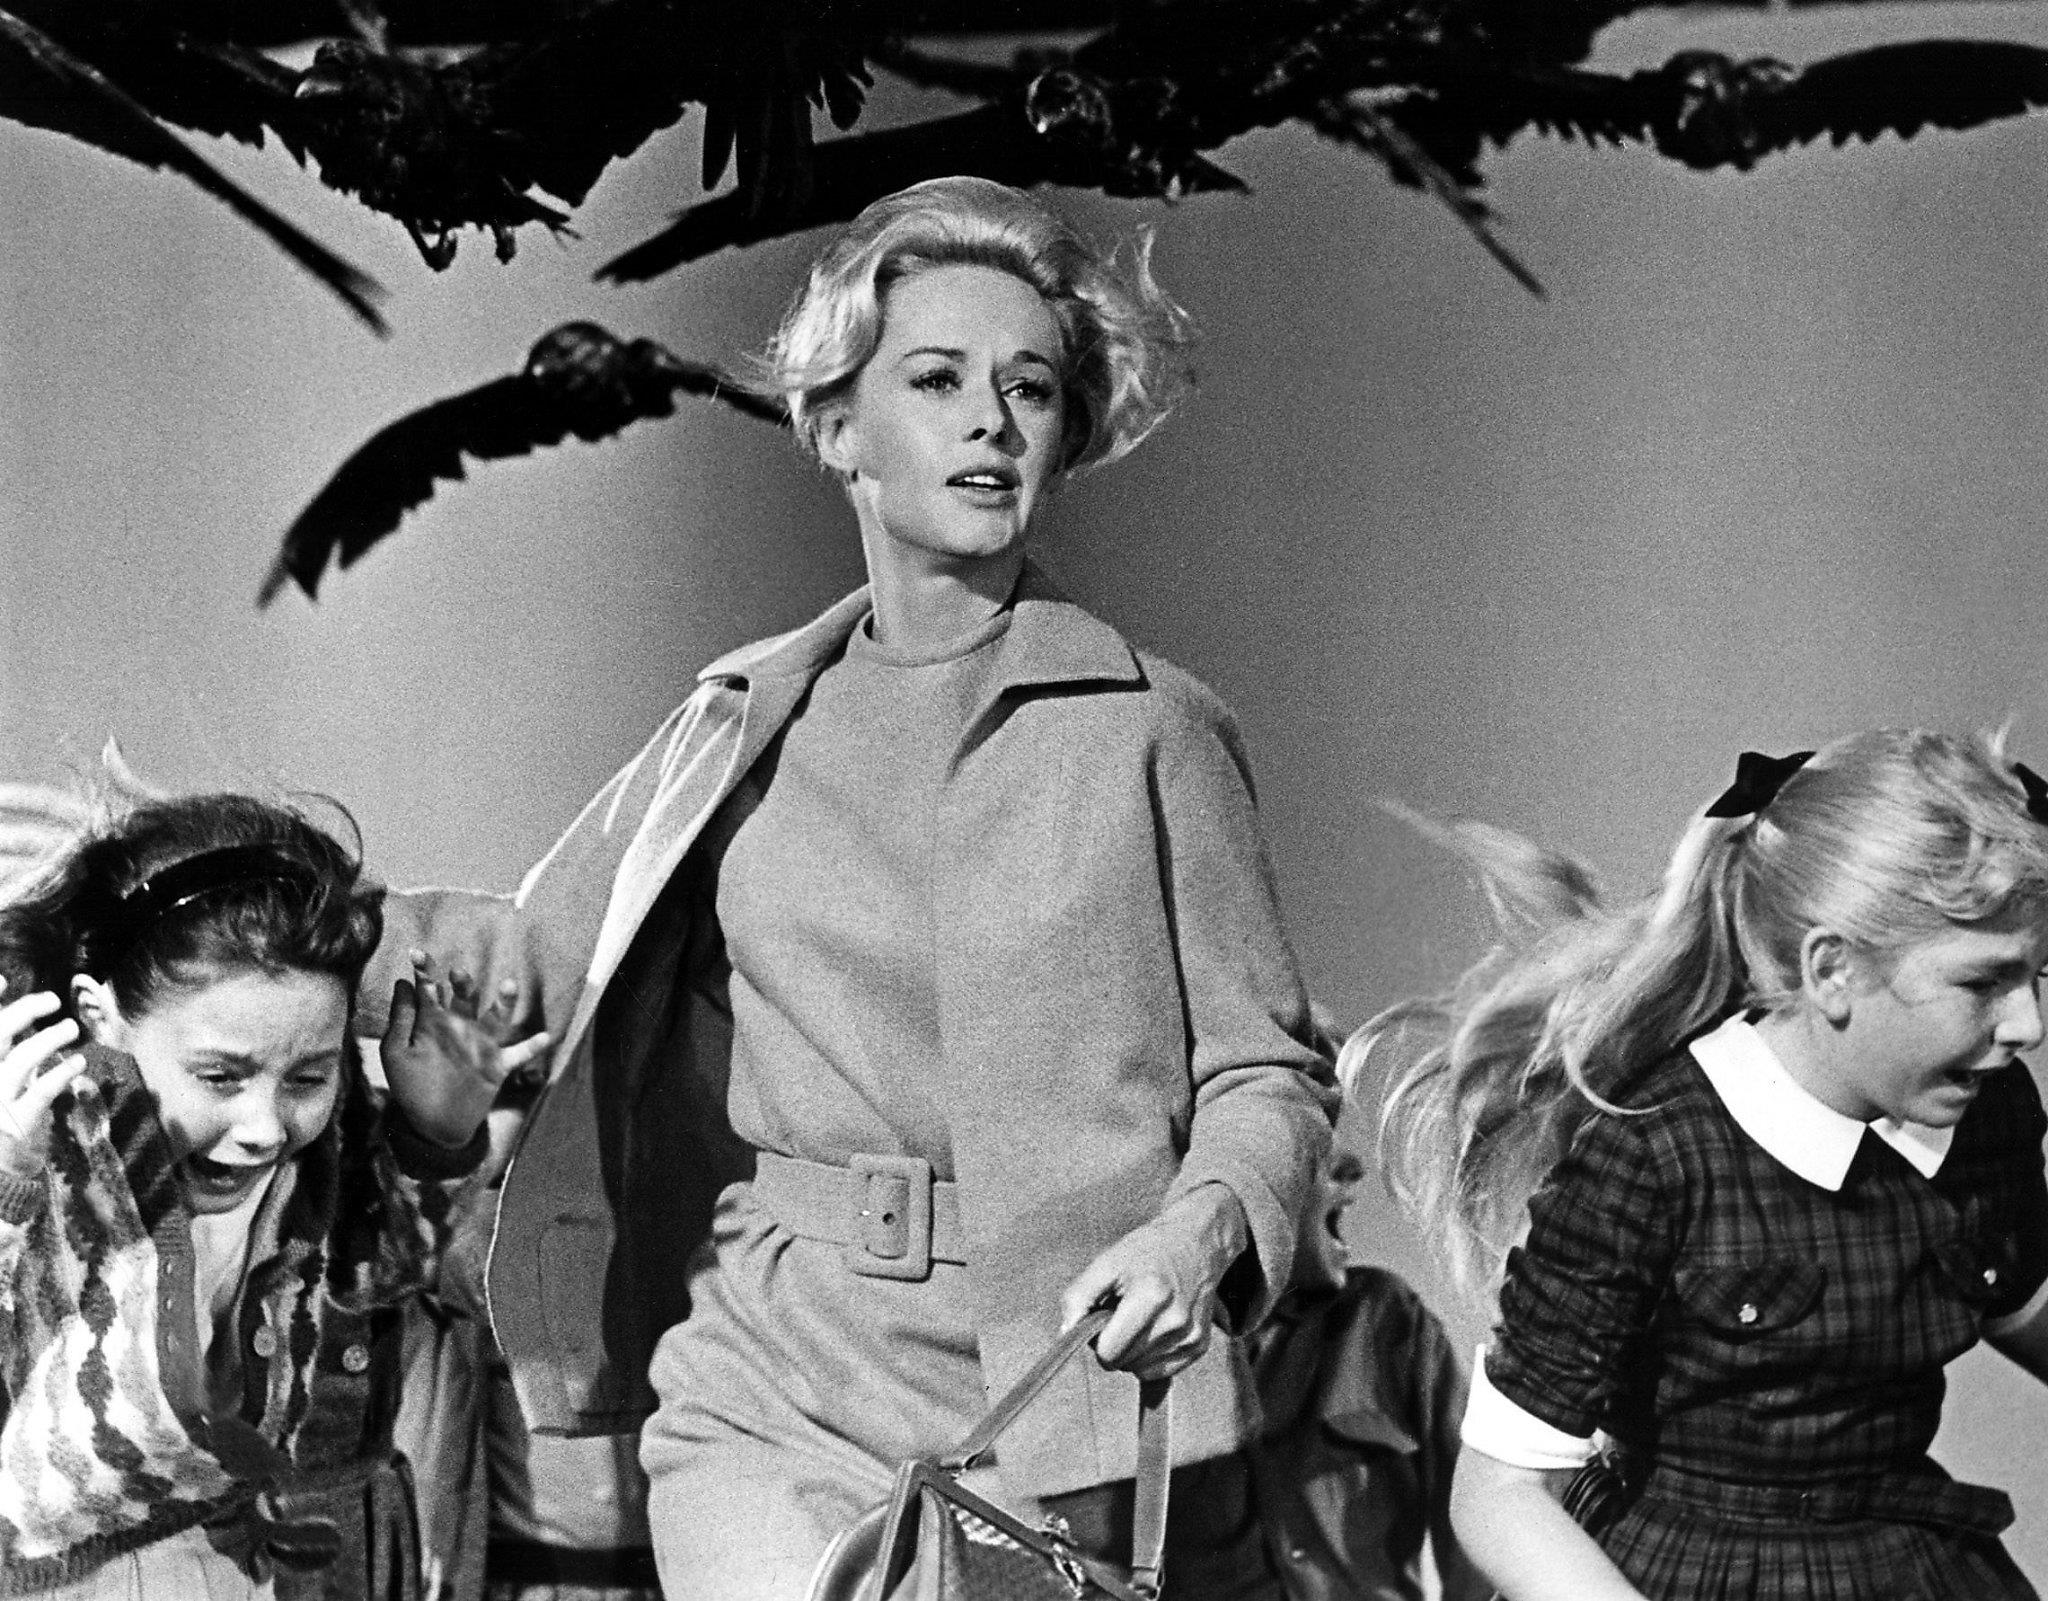 The Birds,' released in 1963, is the movie we need in 2018 - SFChronicle.com